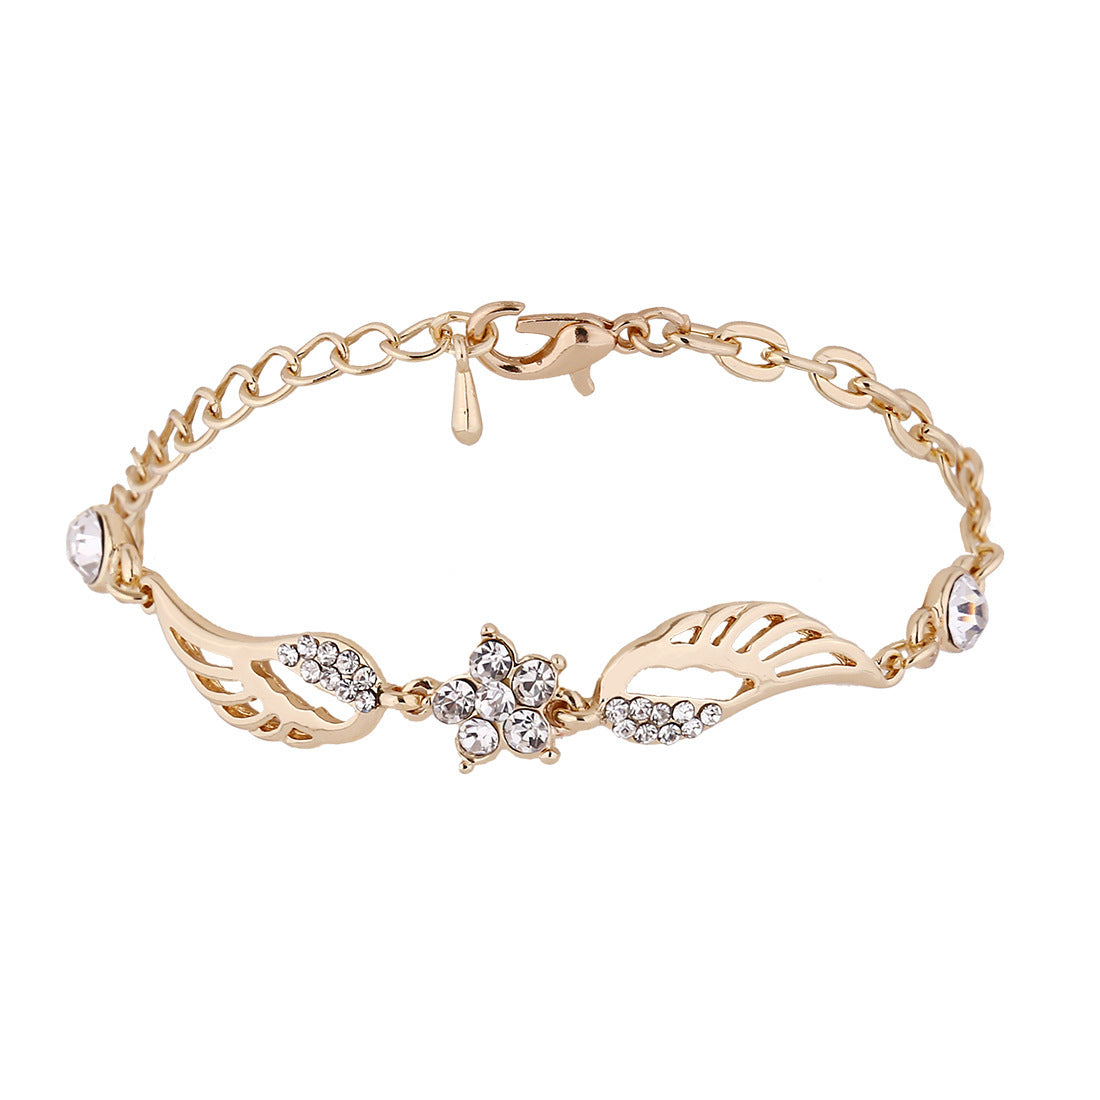 FREE! Angel Wings Star Charm Bracelet - The Creative Booth